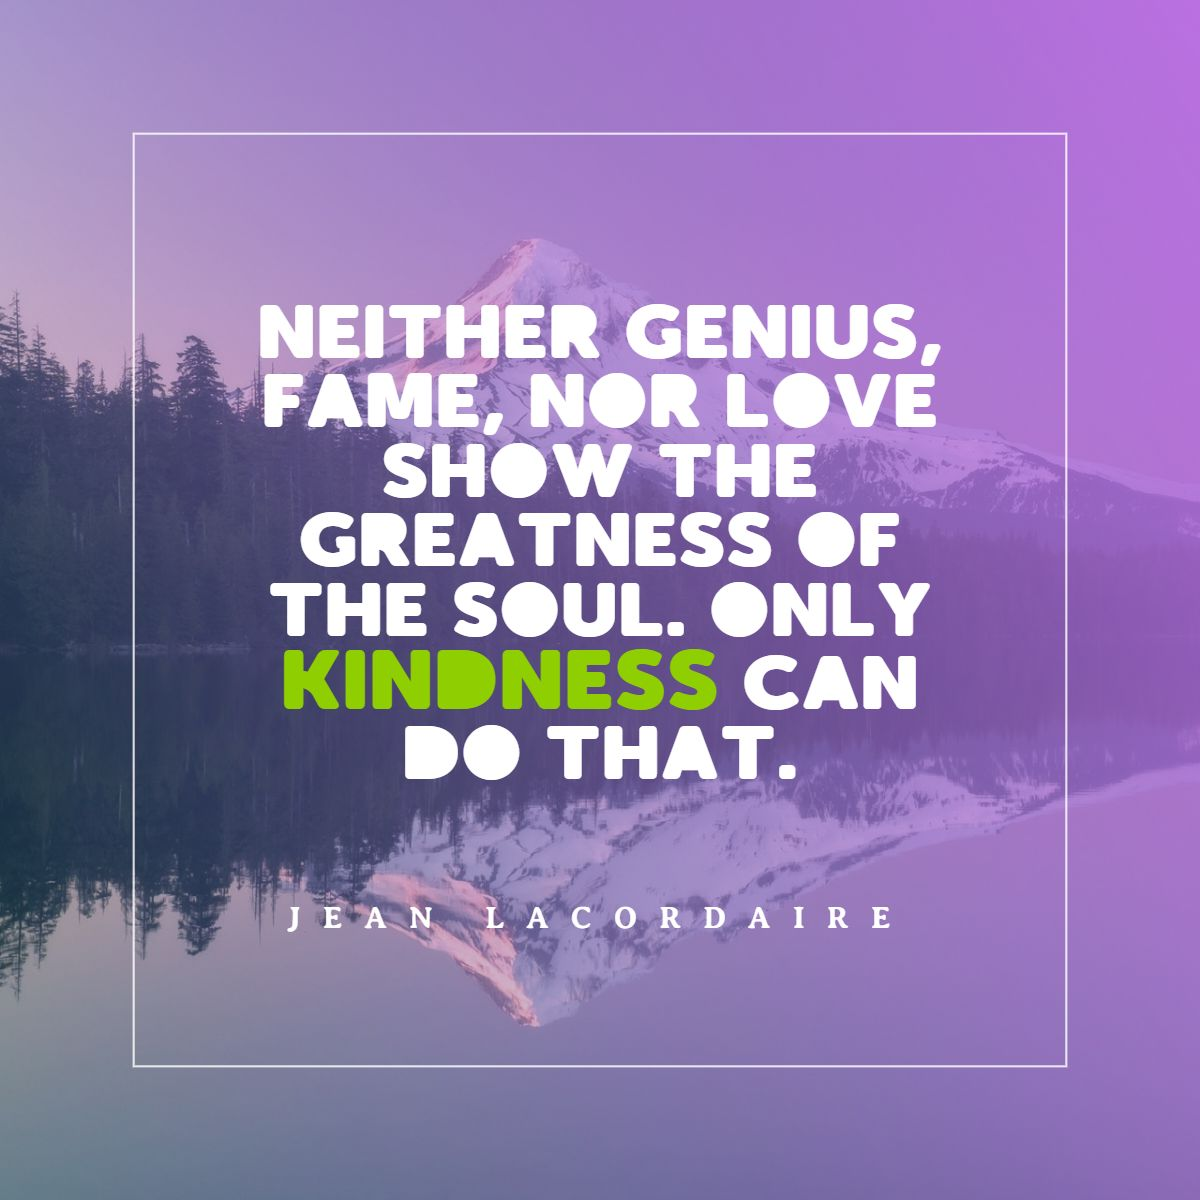 Quotes image of Neither genius, fame, nor love show the greatness of the soul. Only kindness can do that.